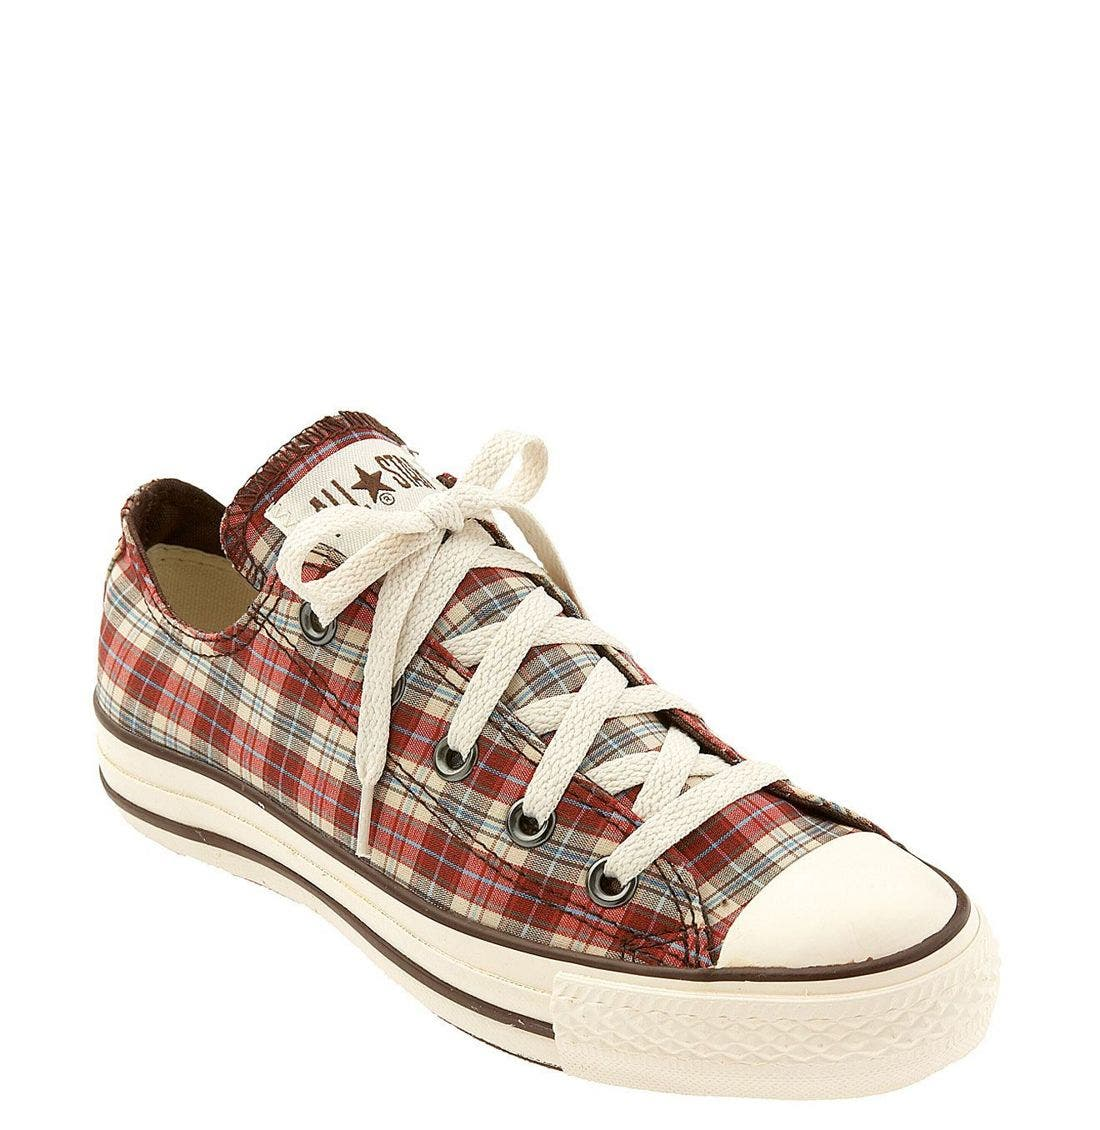 Alternate Image 1 Selected - Converse Chuck Taylor® 'Moire' Sneaker (Women)